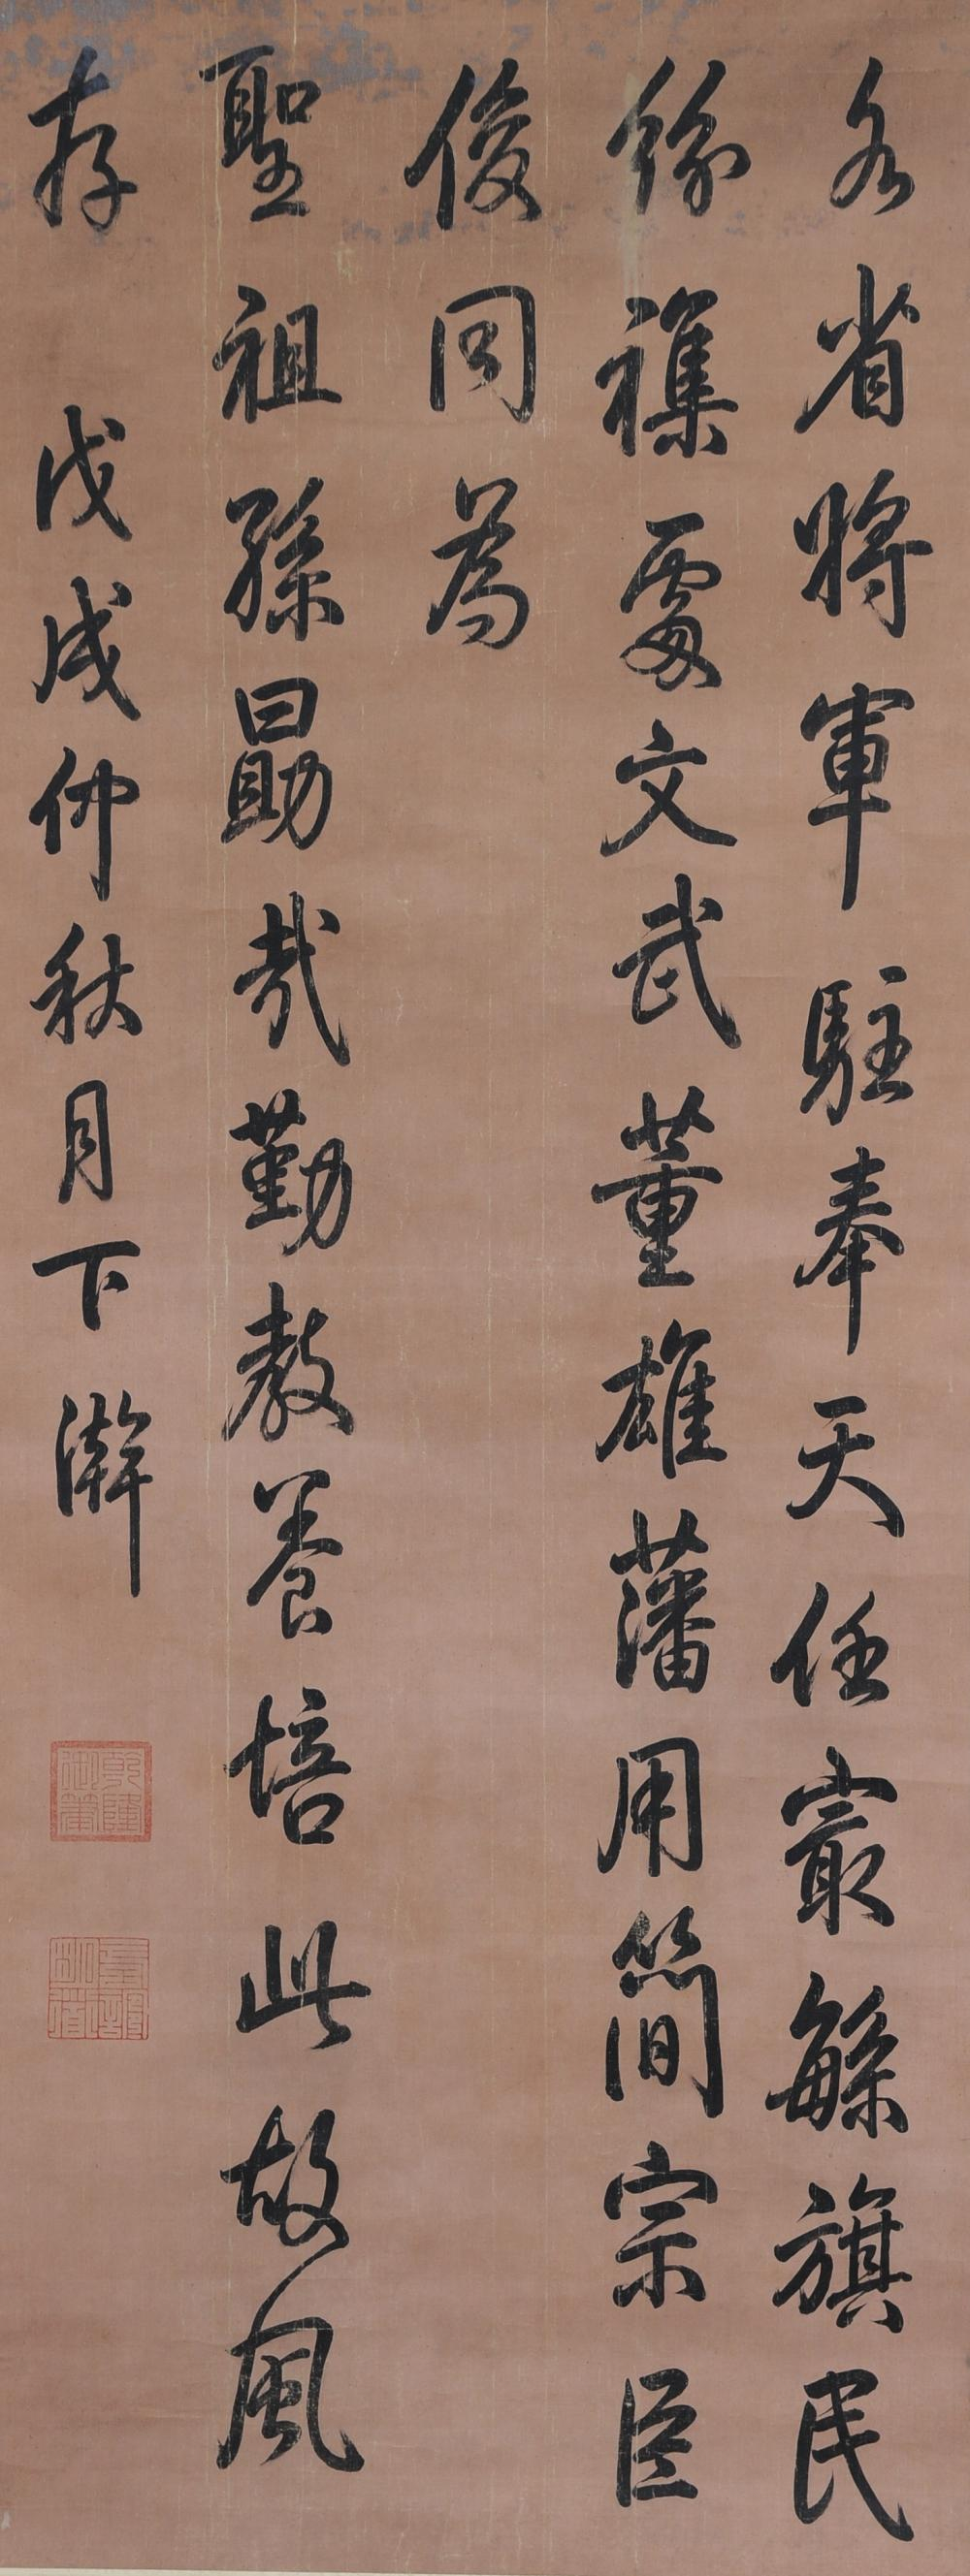 CHINESE IMPERIAL CALLIGRAPHY BY EMPEROR QIANLONG